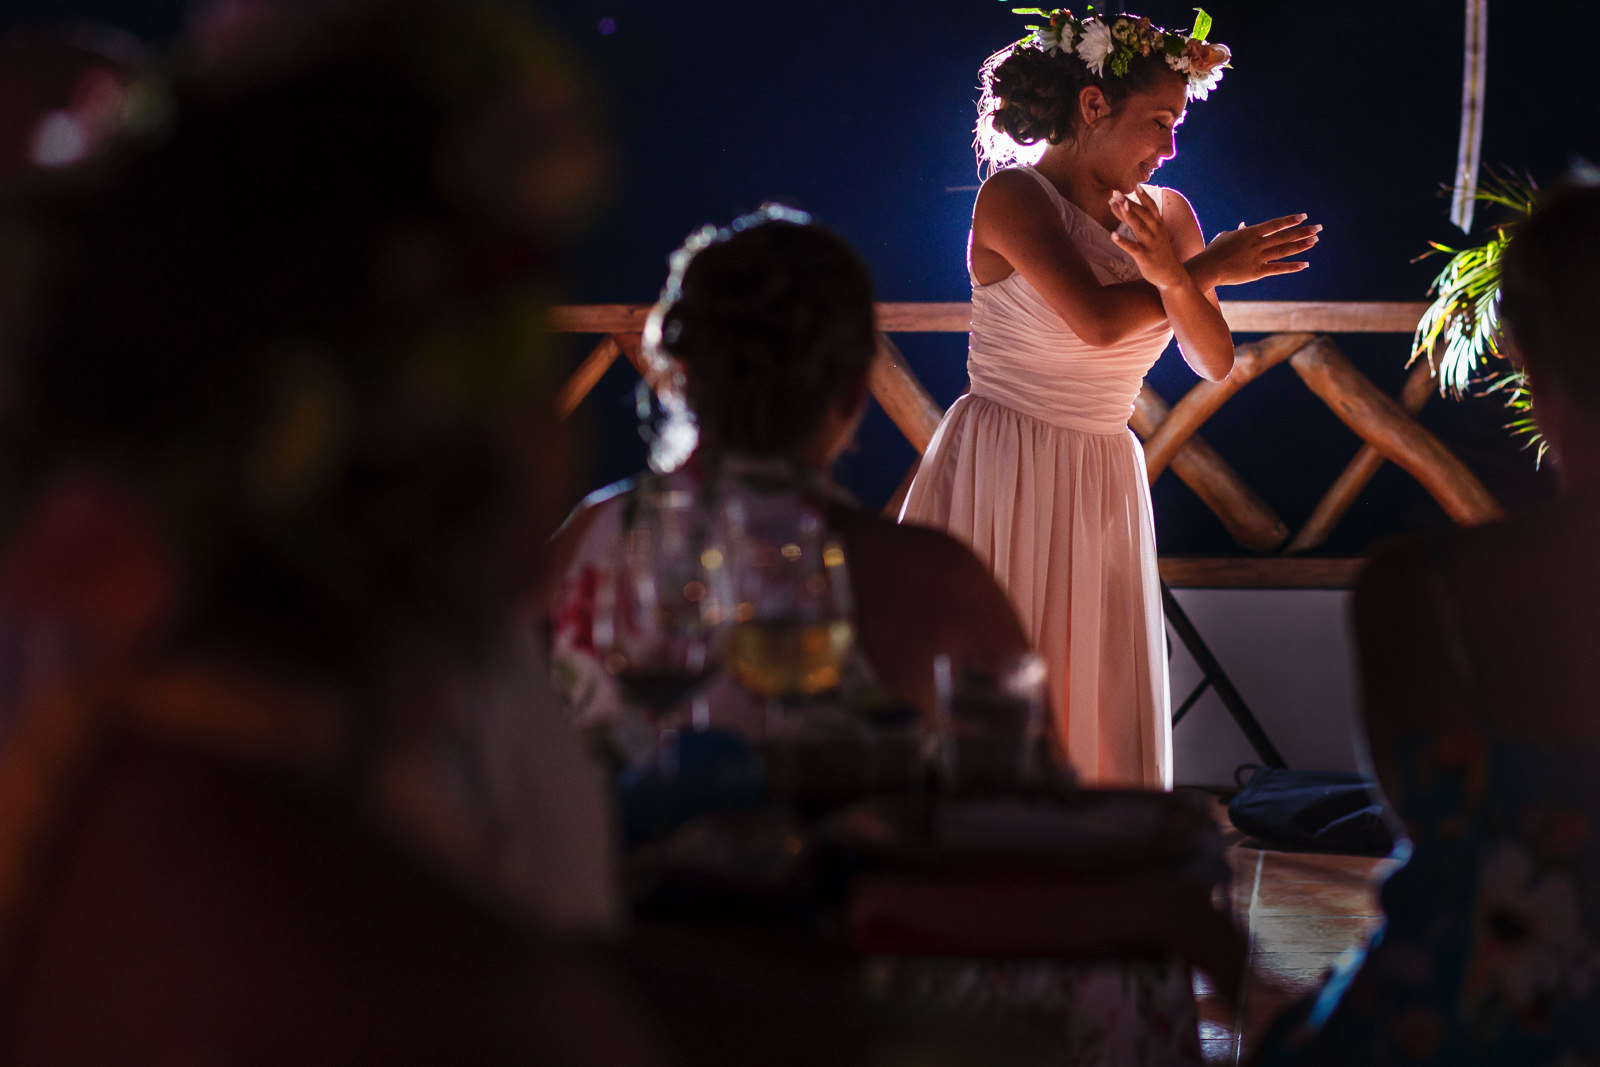 Bridesmaid/daughter performing a dance during the wedding dinner.